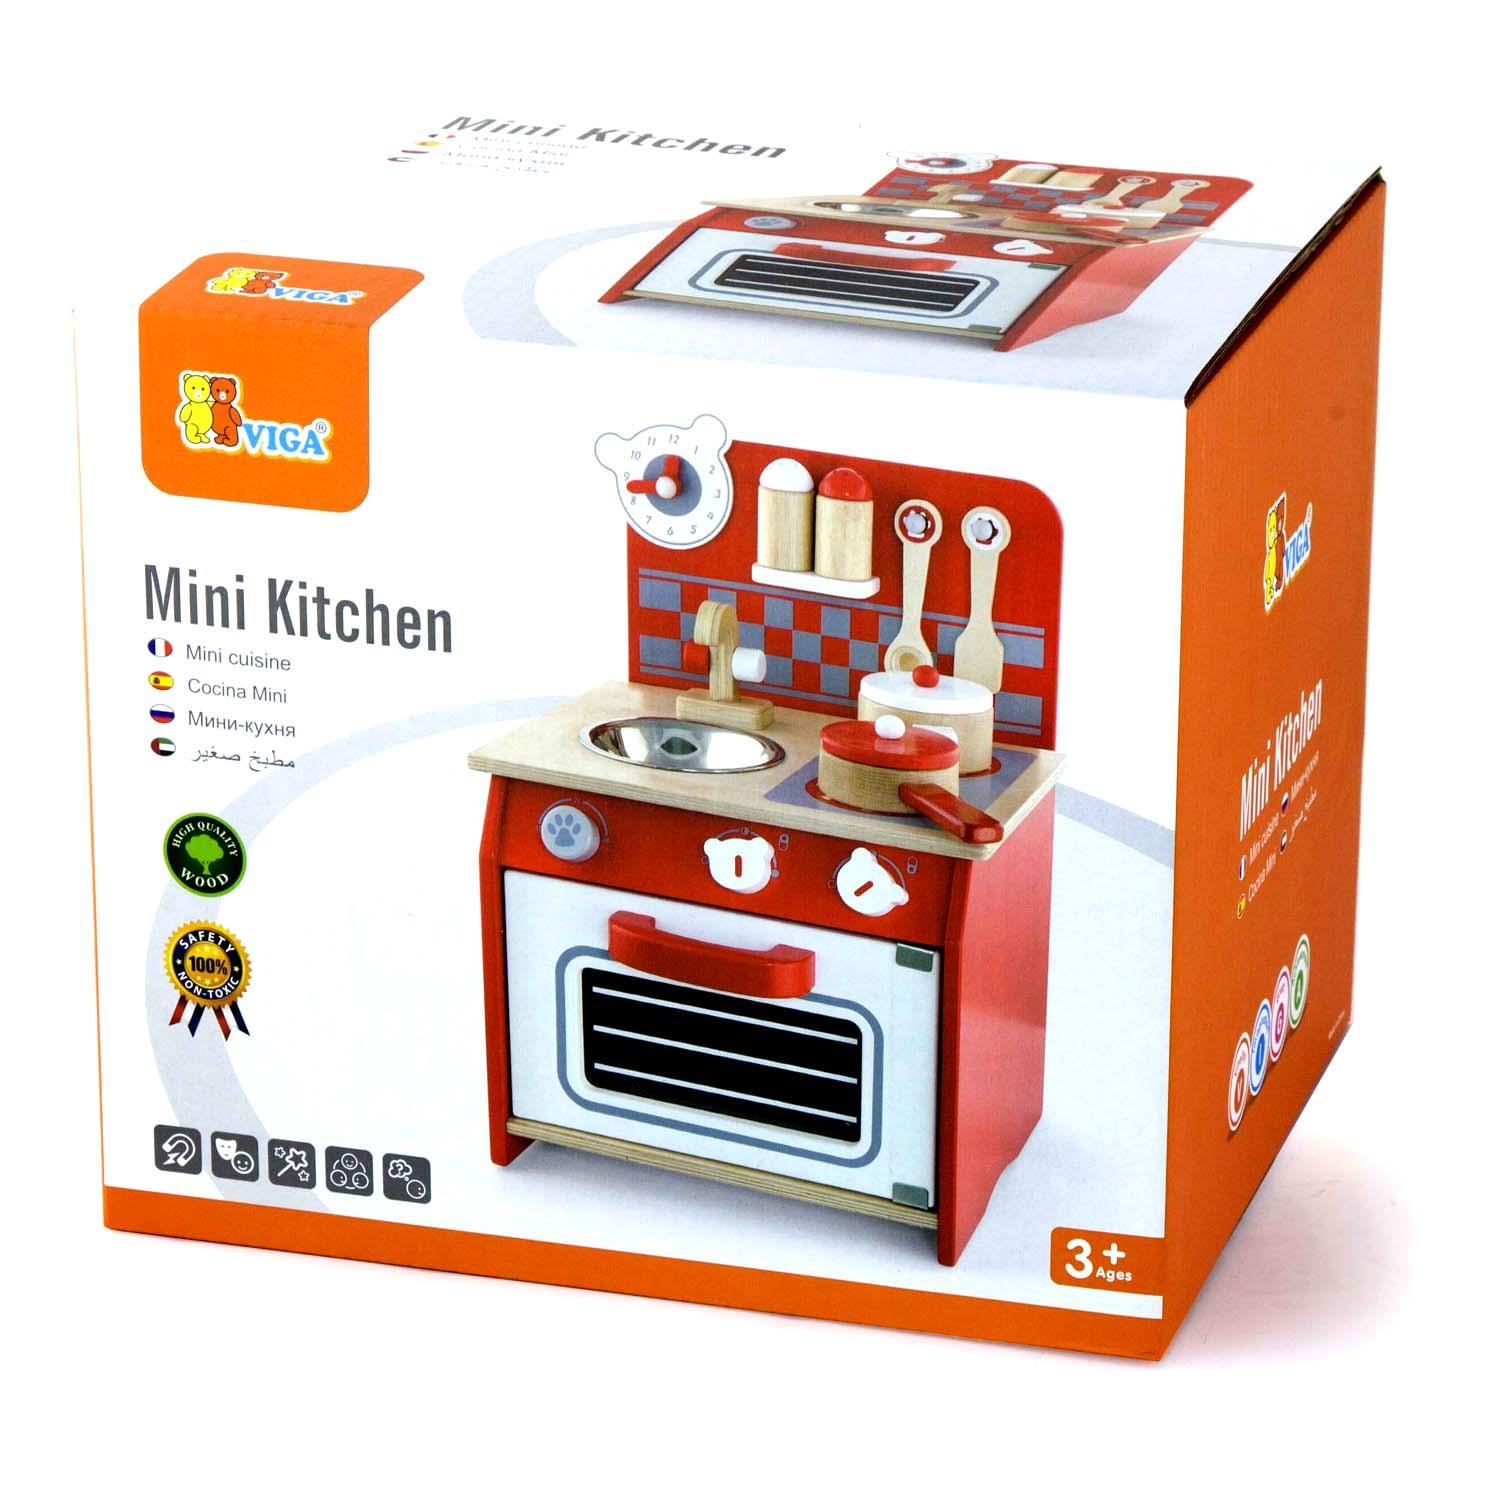 Wooden childrens kitchen set captivating image wood for Small kitchen set for kids